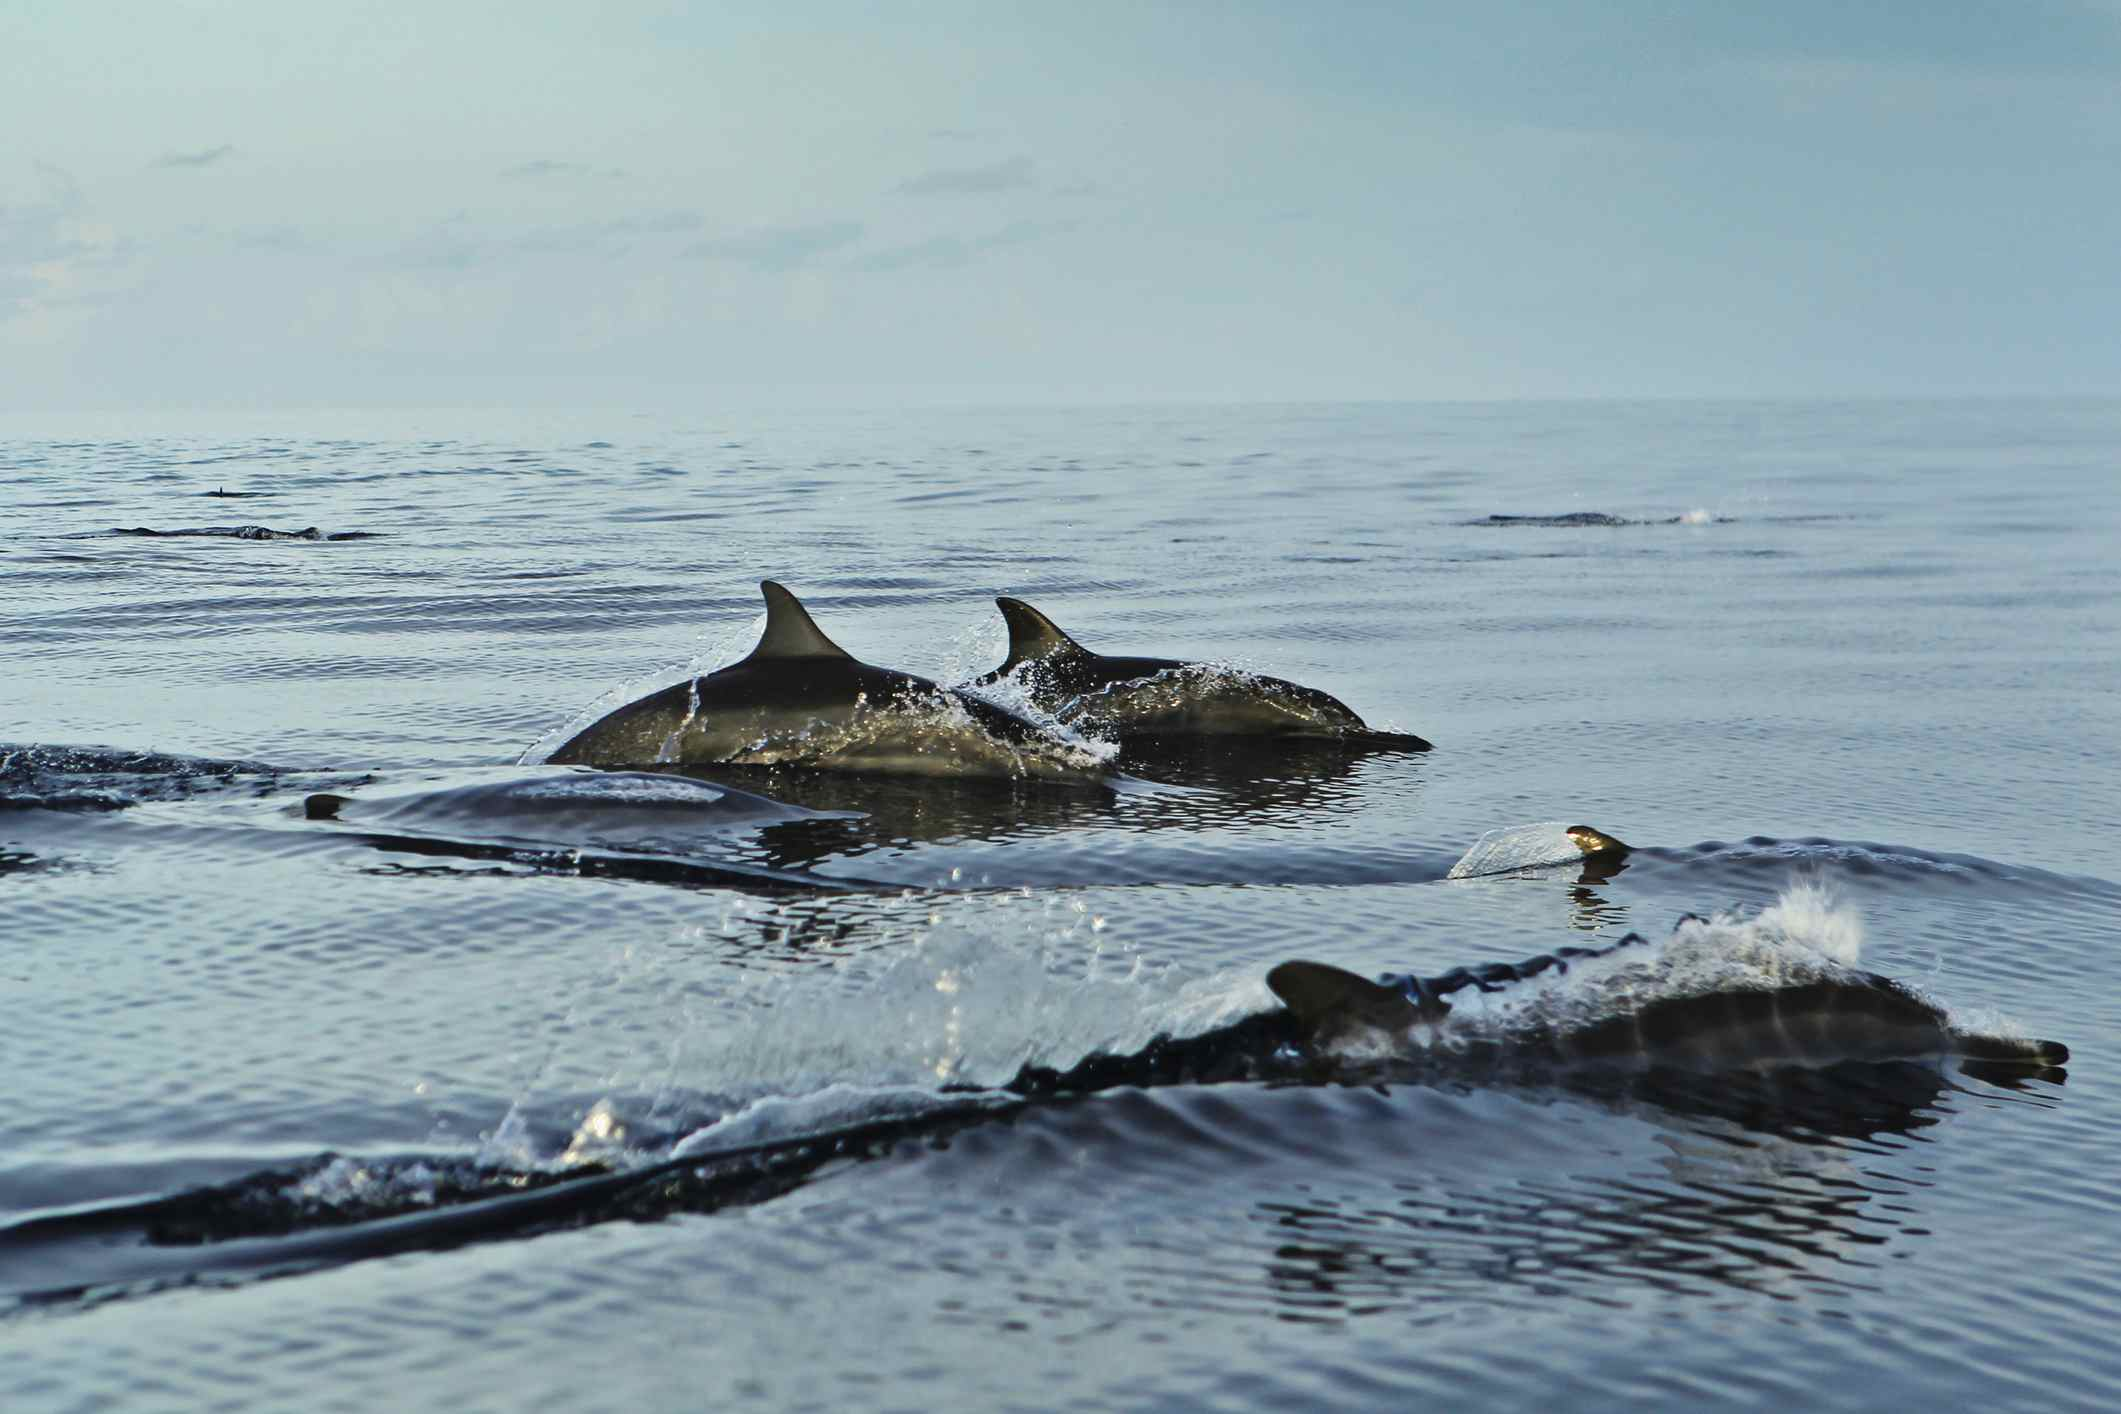 Spinner dolphins in the Maldives